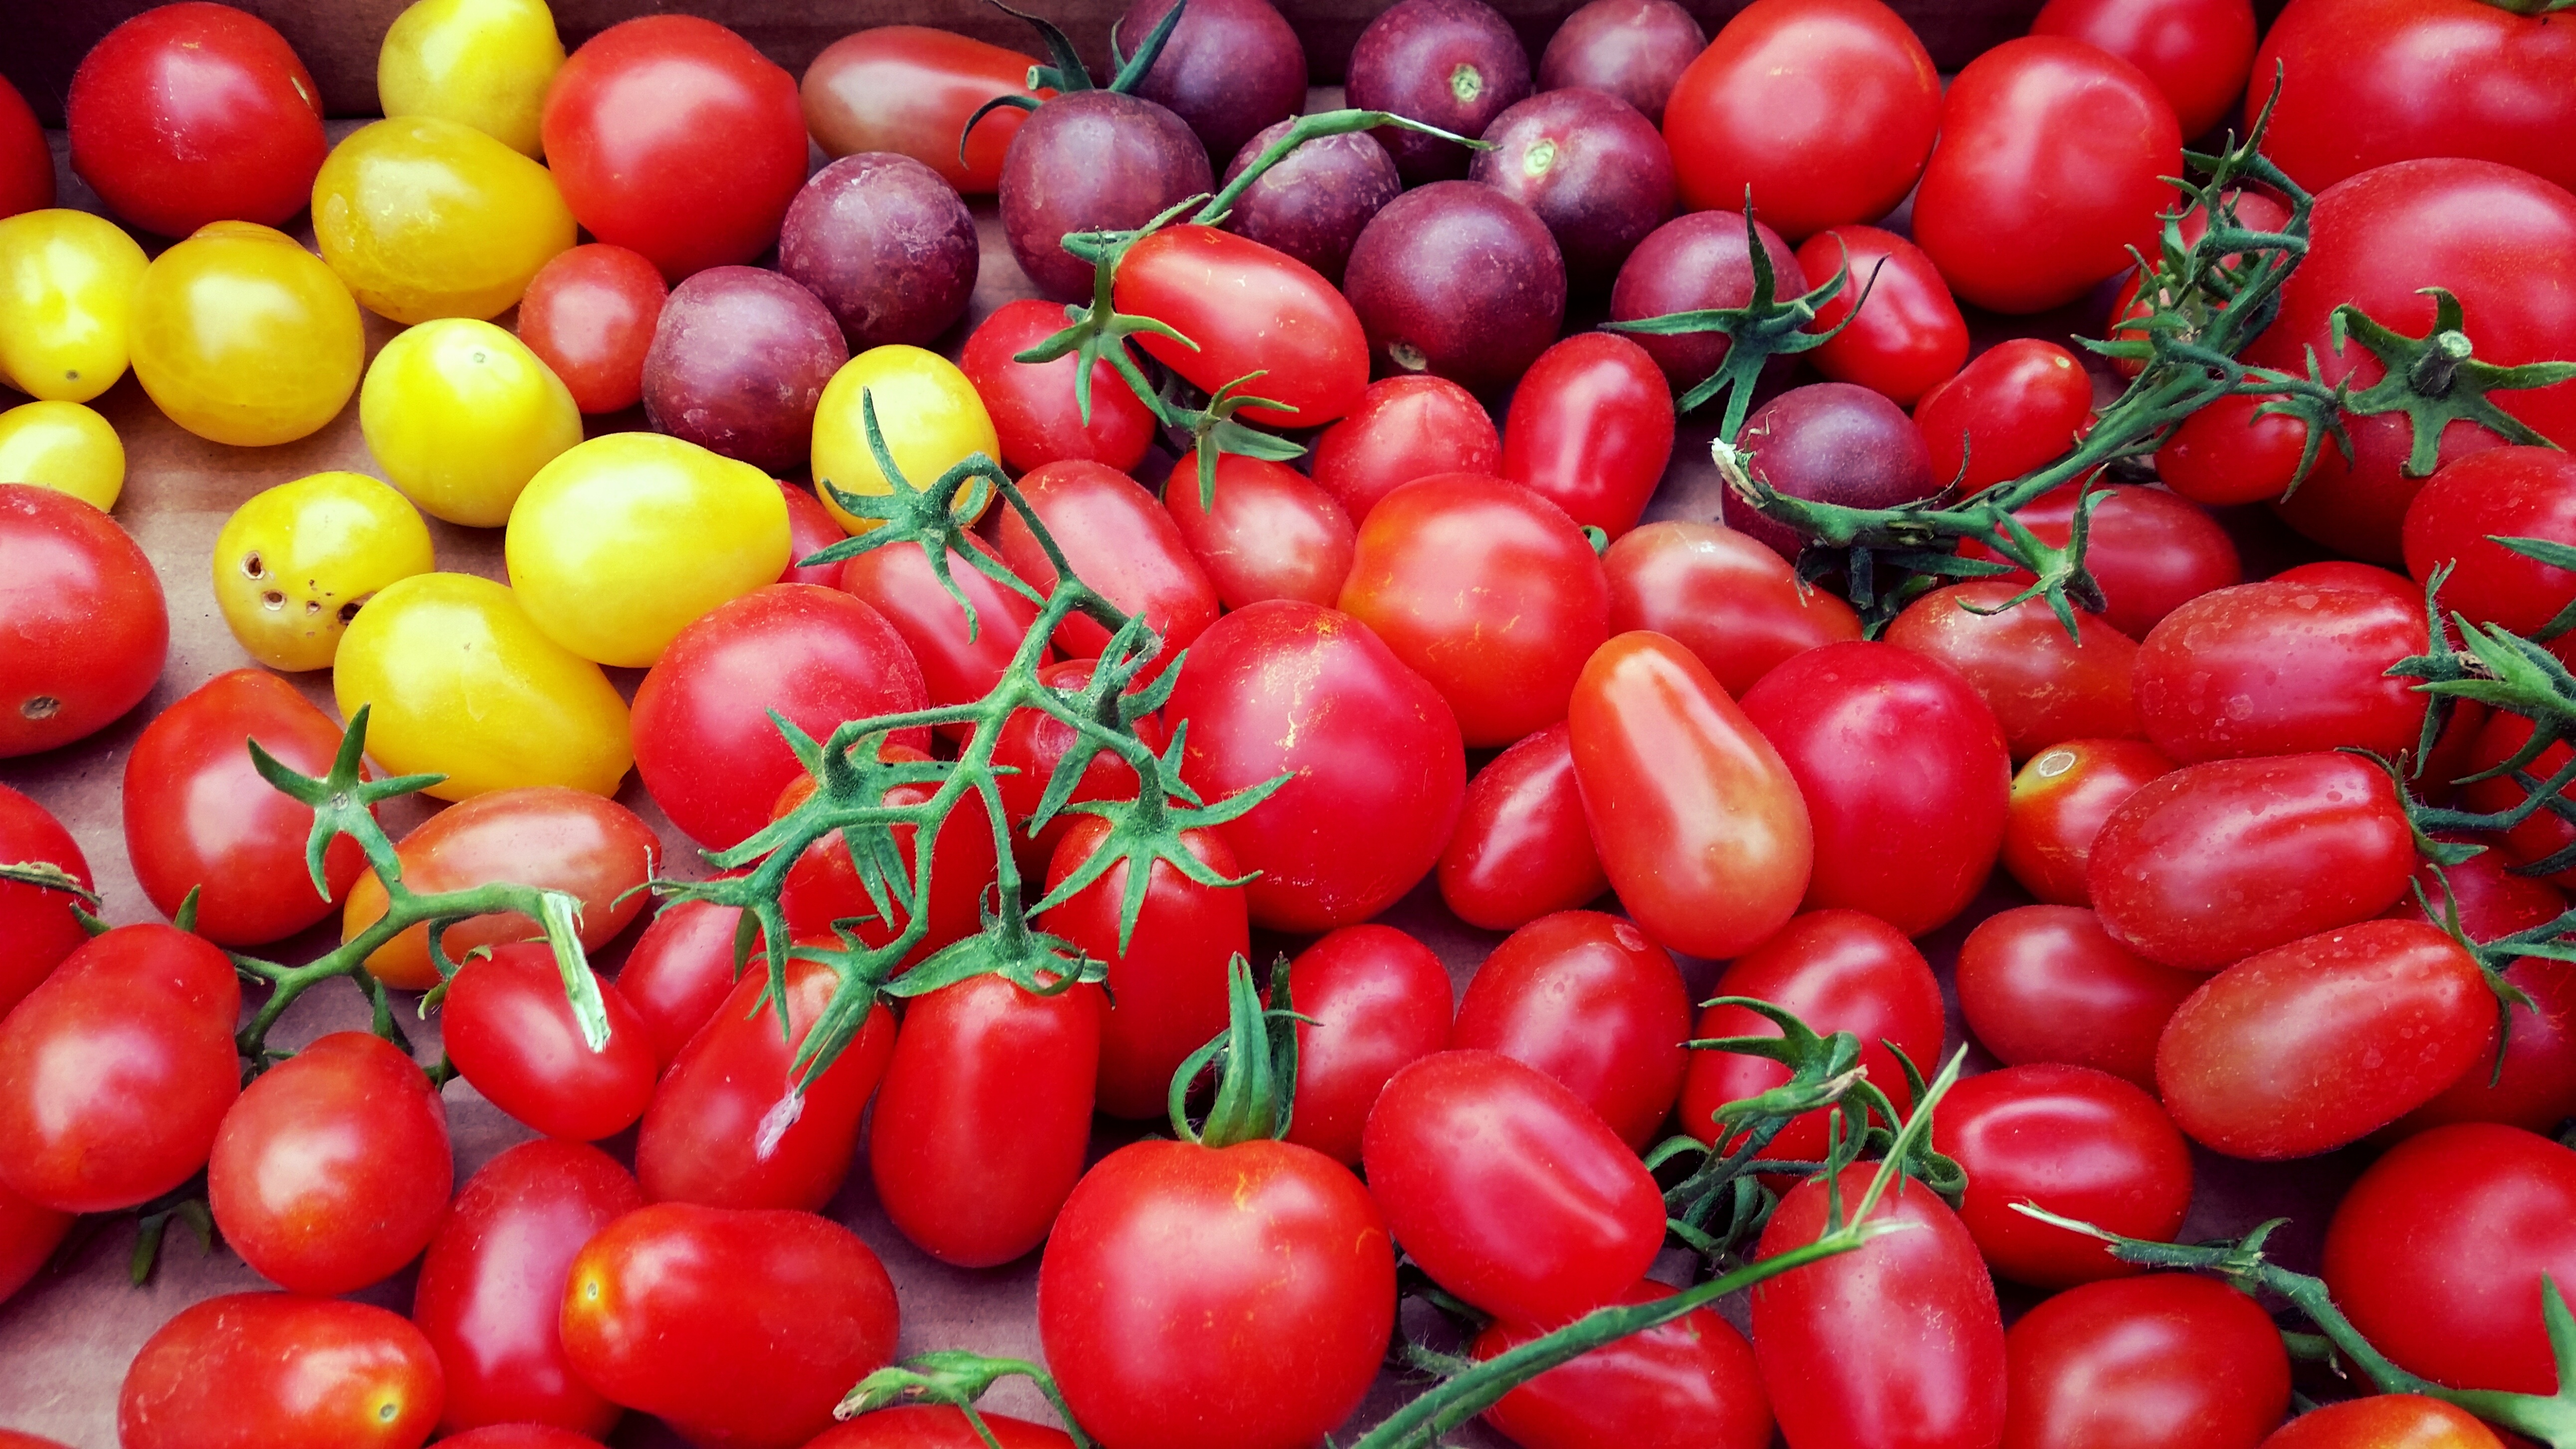 115453 download wallpaper Food, Cherry, Vegetables, Tomatoes, Variety, Varieties screensavers and pictures for free